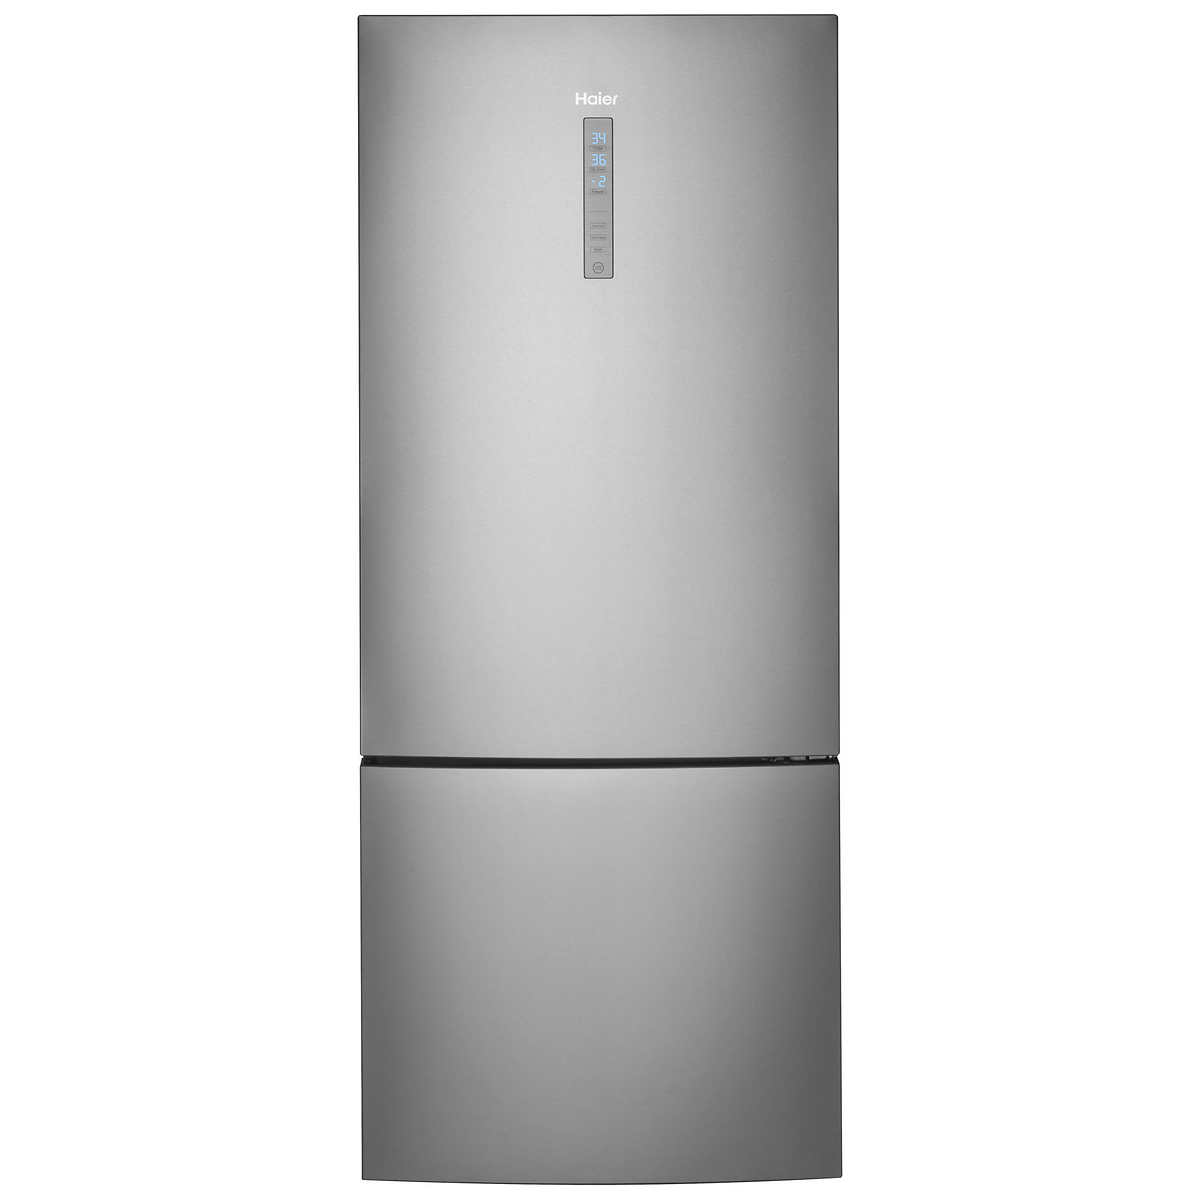 weakness of haier Essay about qingdao haier ltd: considering the maytag qingdao haier is one of the top large appliance manufactures in although with strengths comes weaknesses.